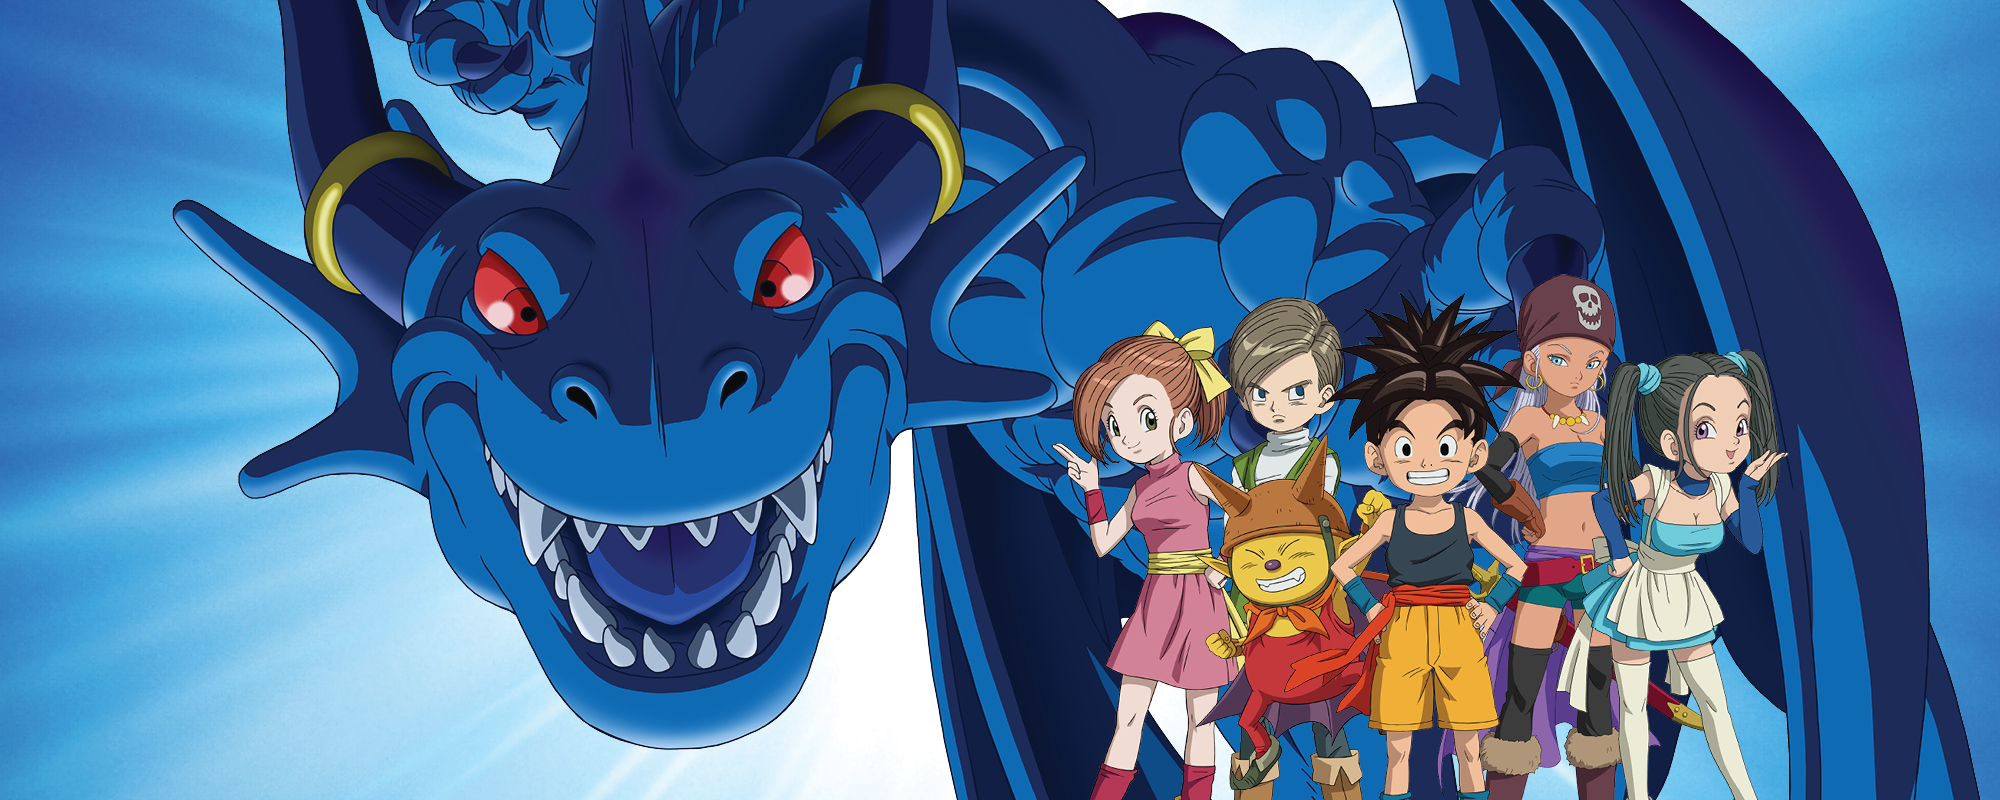 Blue Dragon Anime: The Official Website For Blue Dragon